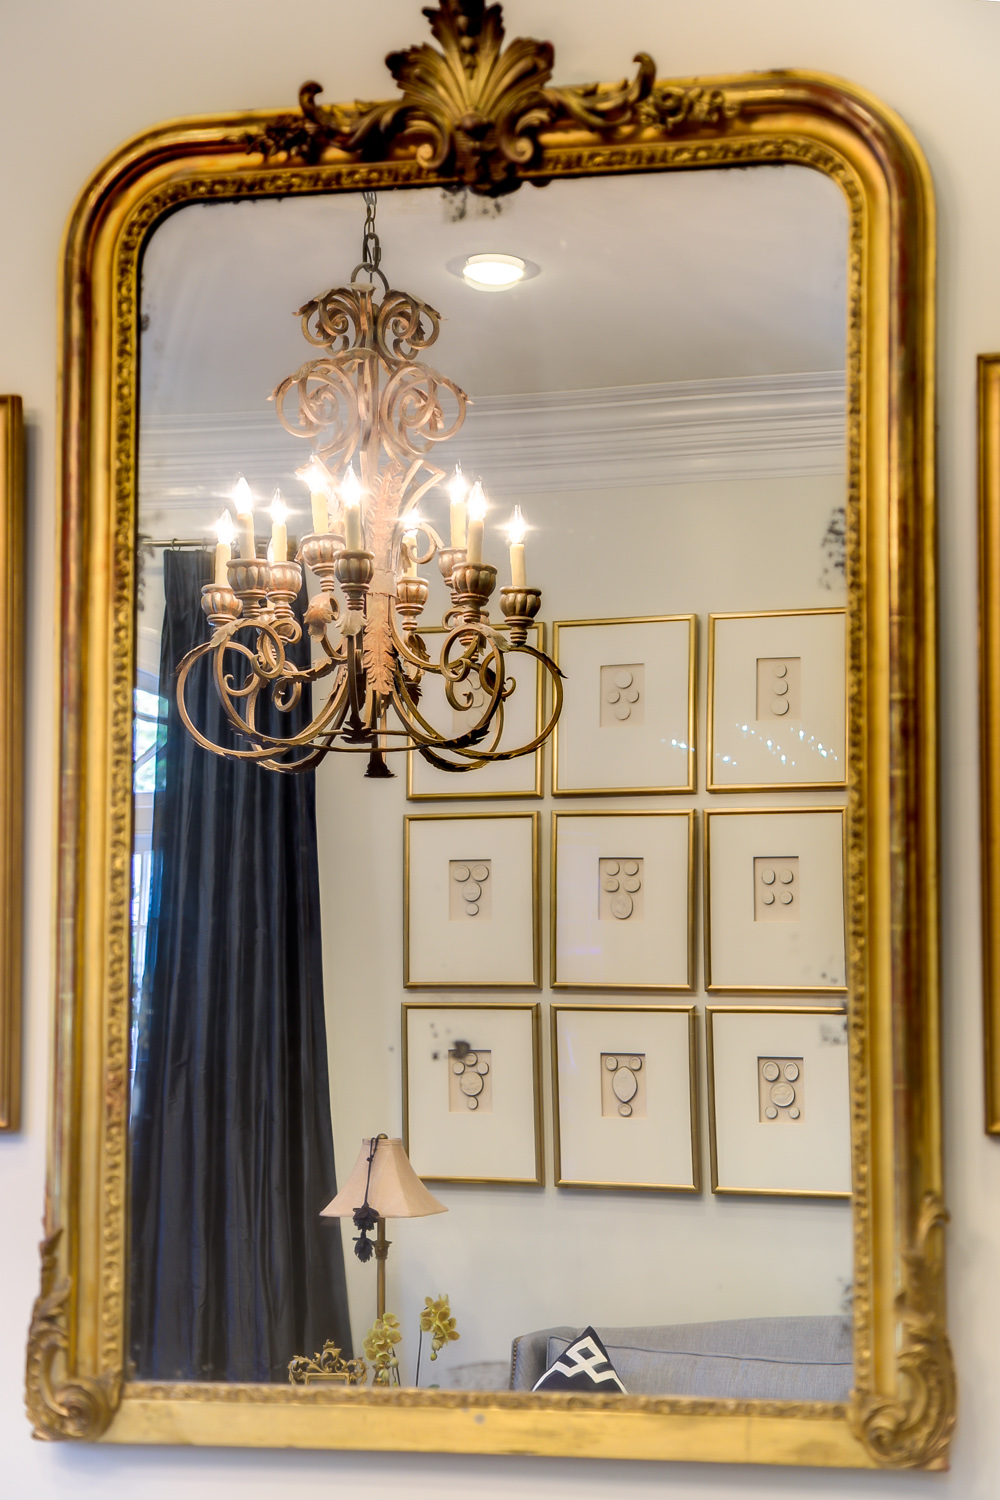 mirrors and art decorating ideas metairie residential interior design khb interiors